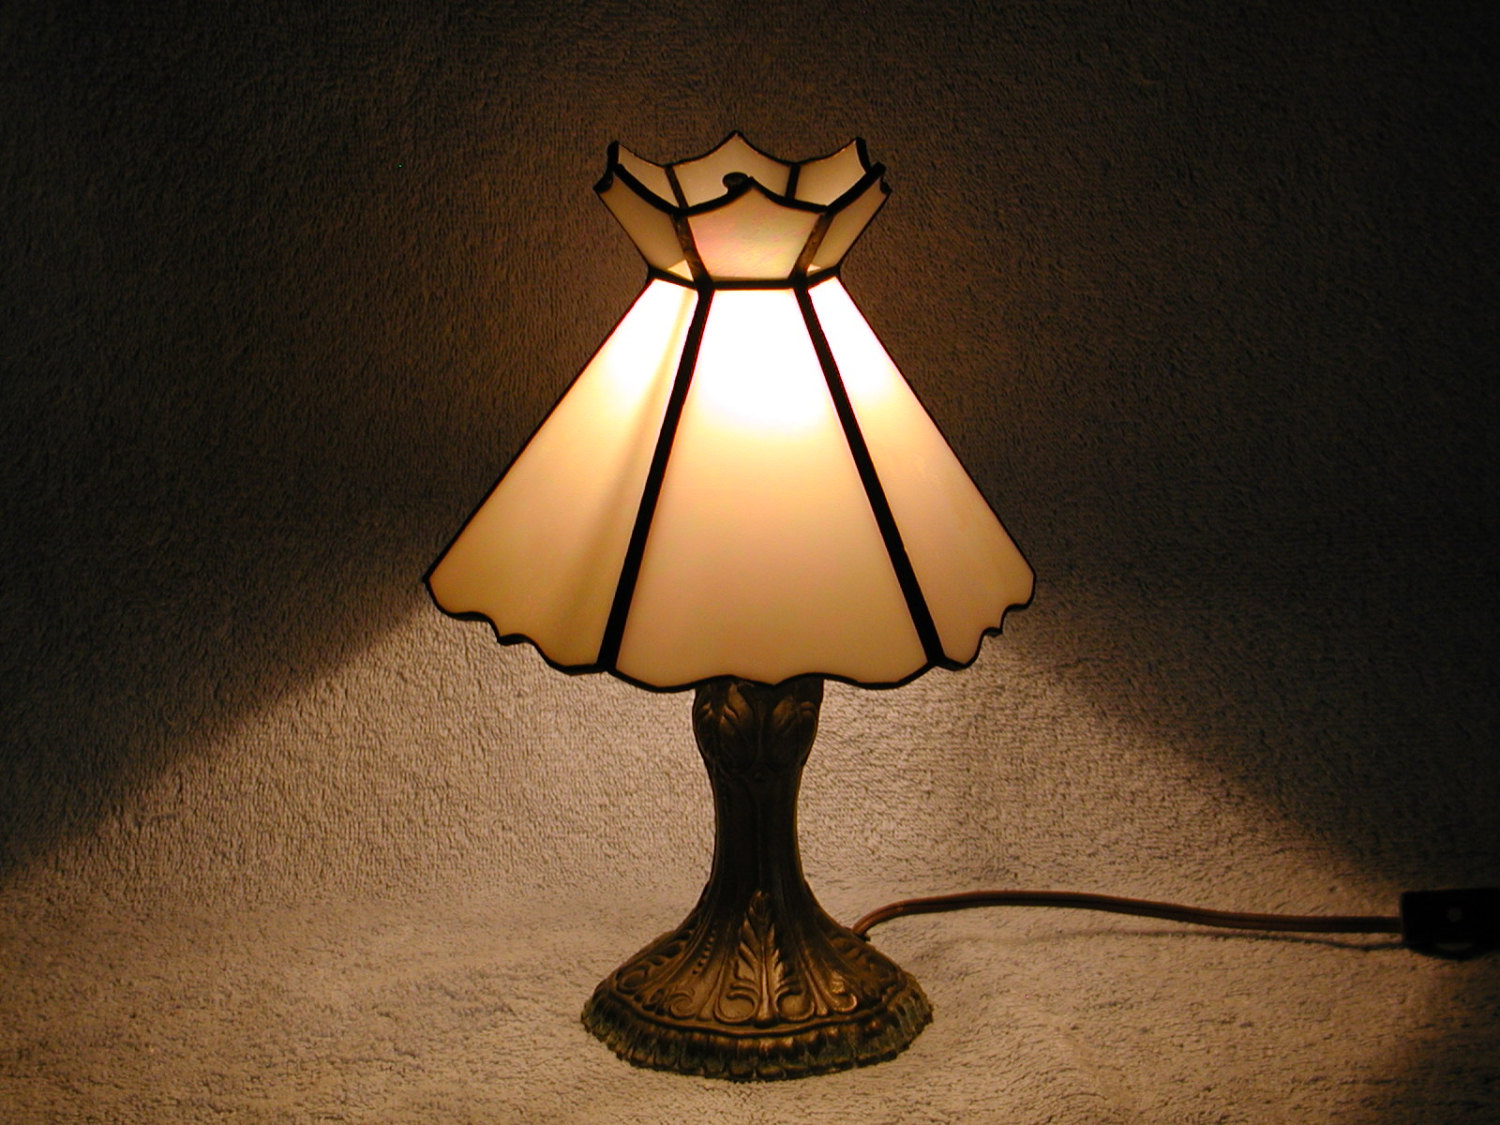 tiffa mini lamp photo - 3